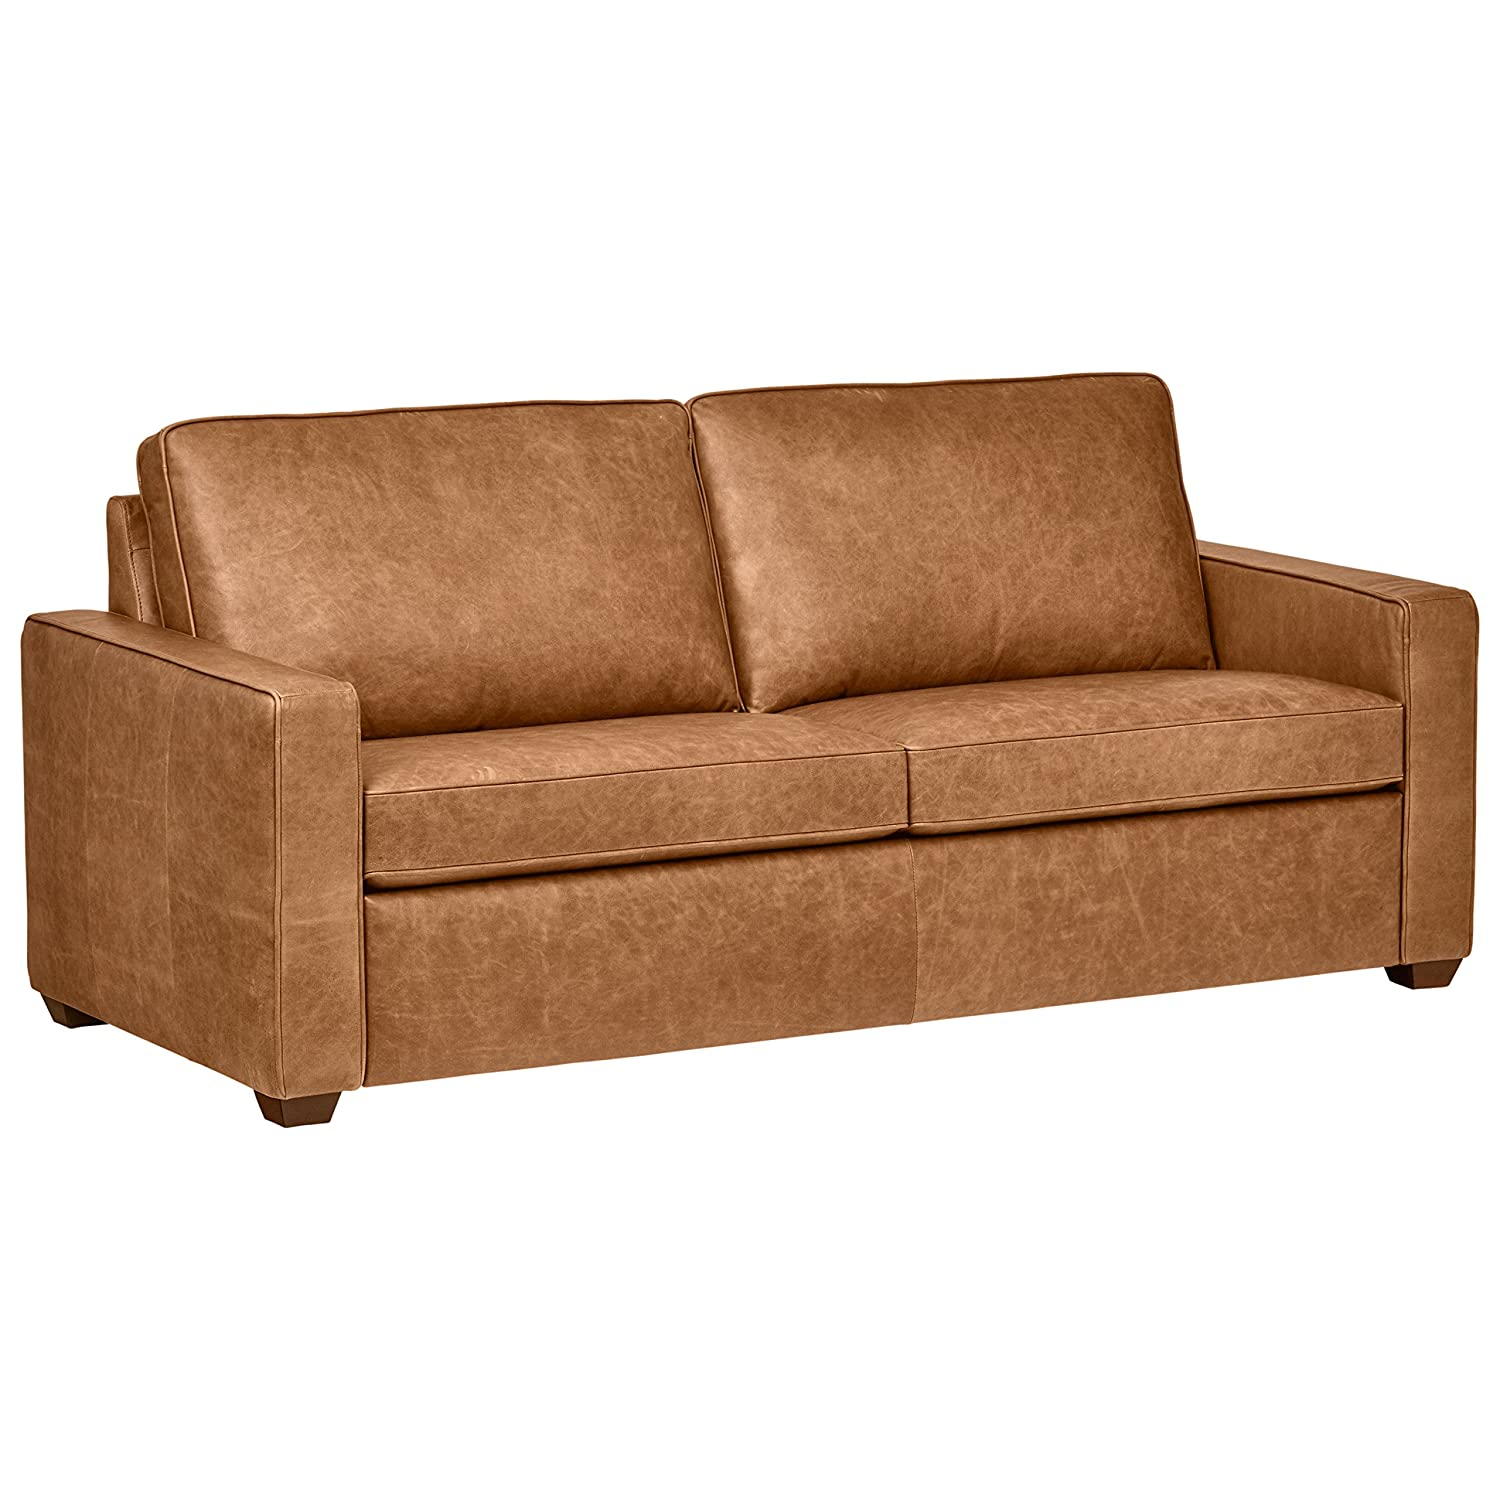 Amazon com rivet andrews modern classic top grain leather sofa 82 w cognac kitchen dining